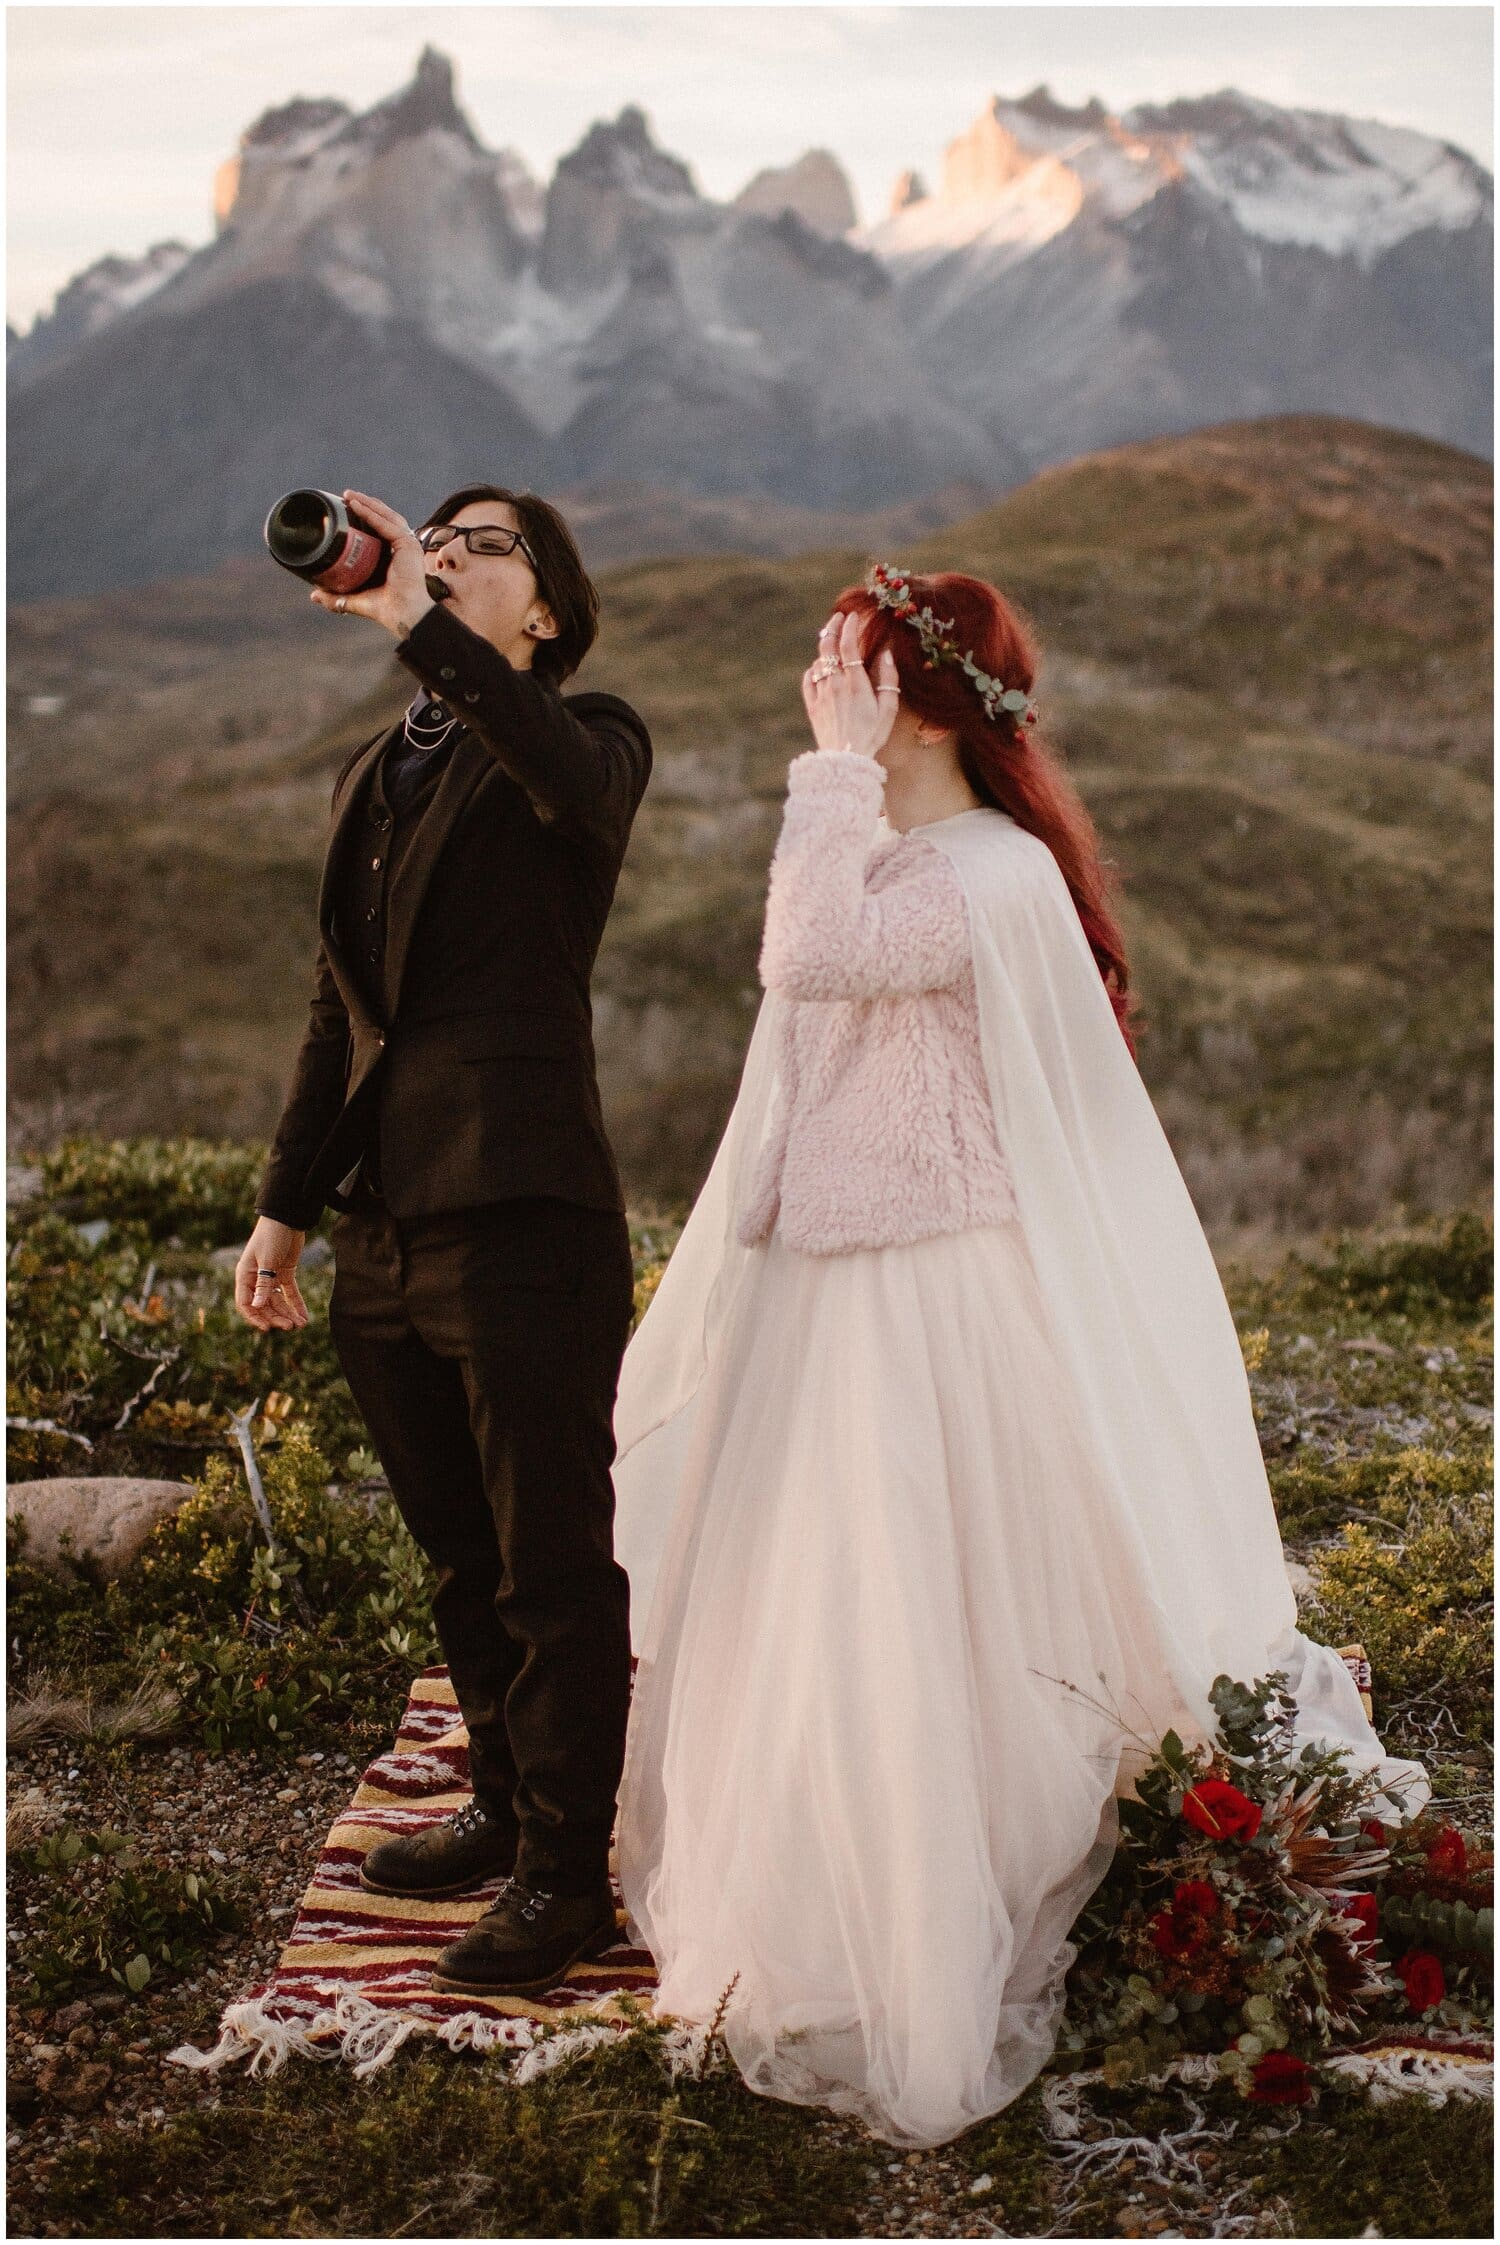 Couple sprays a bottle of champagne on their wedding day in Patagonia.